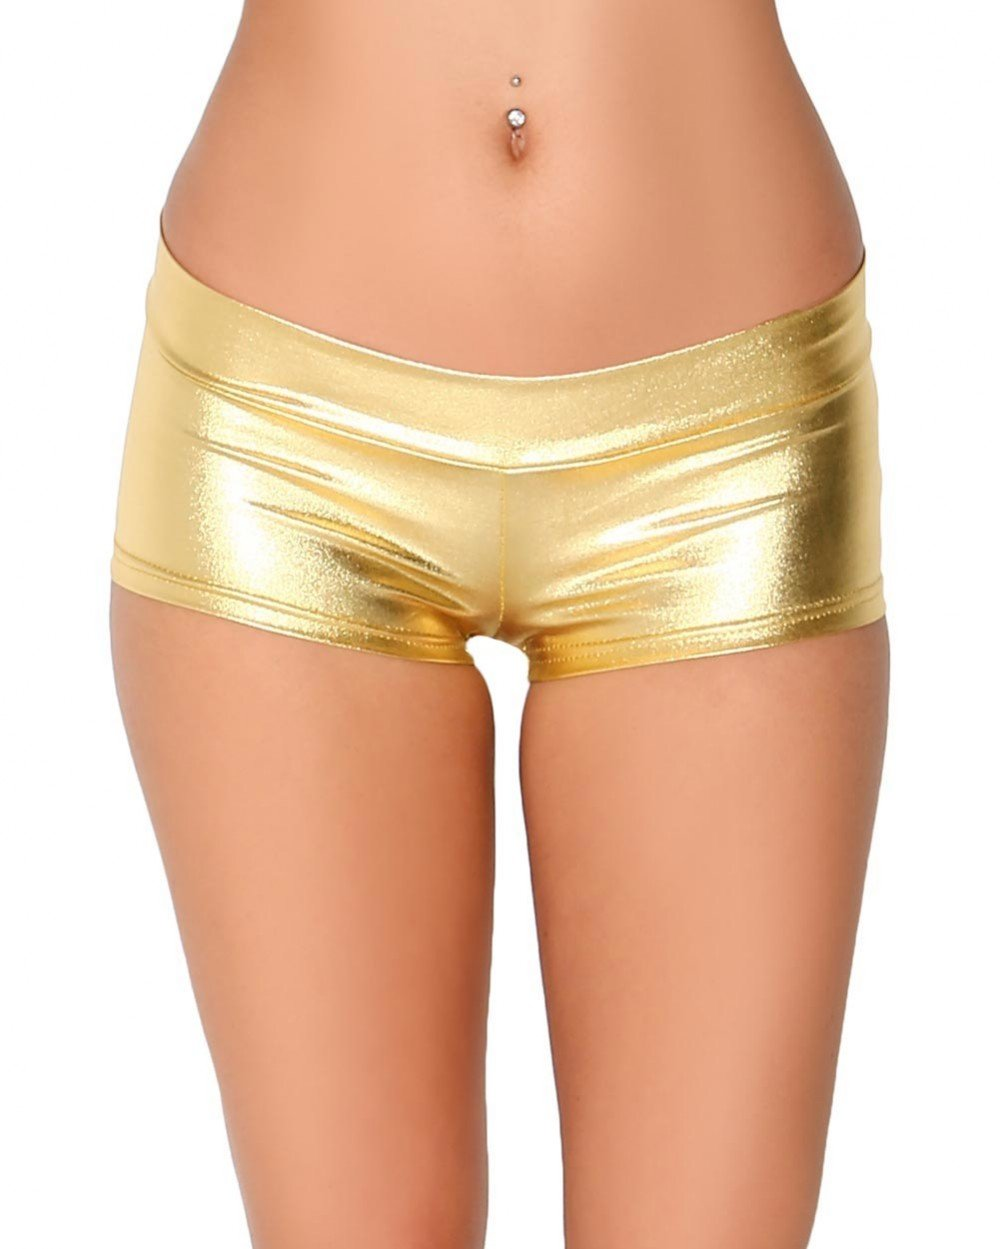 iHeartRaves Metallic Rave Booty Dance Shorts (Medium, Gold)